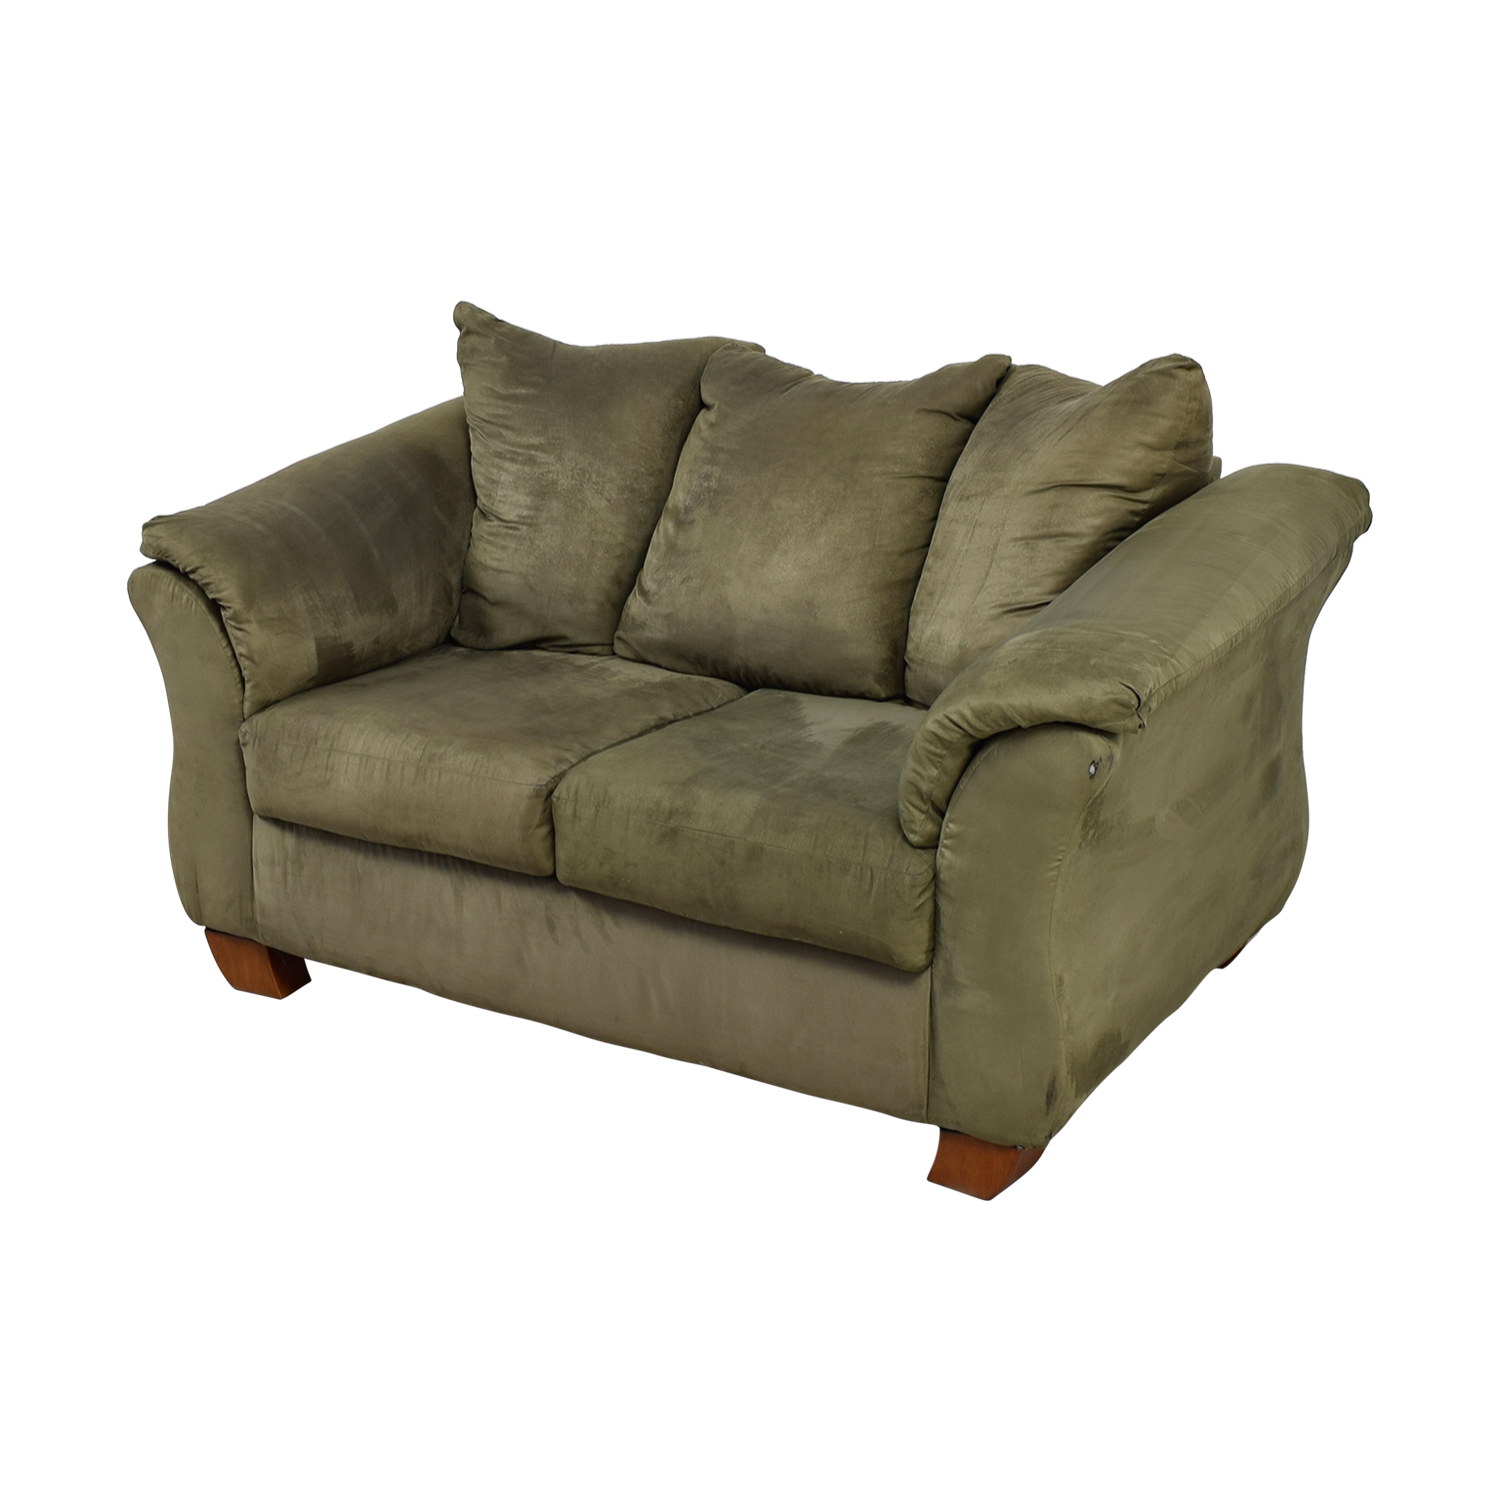 Forest Green Two-Cushion Loveseat